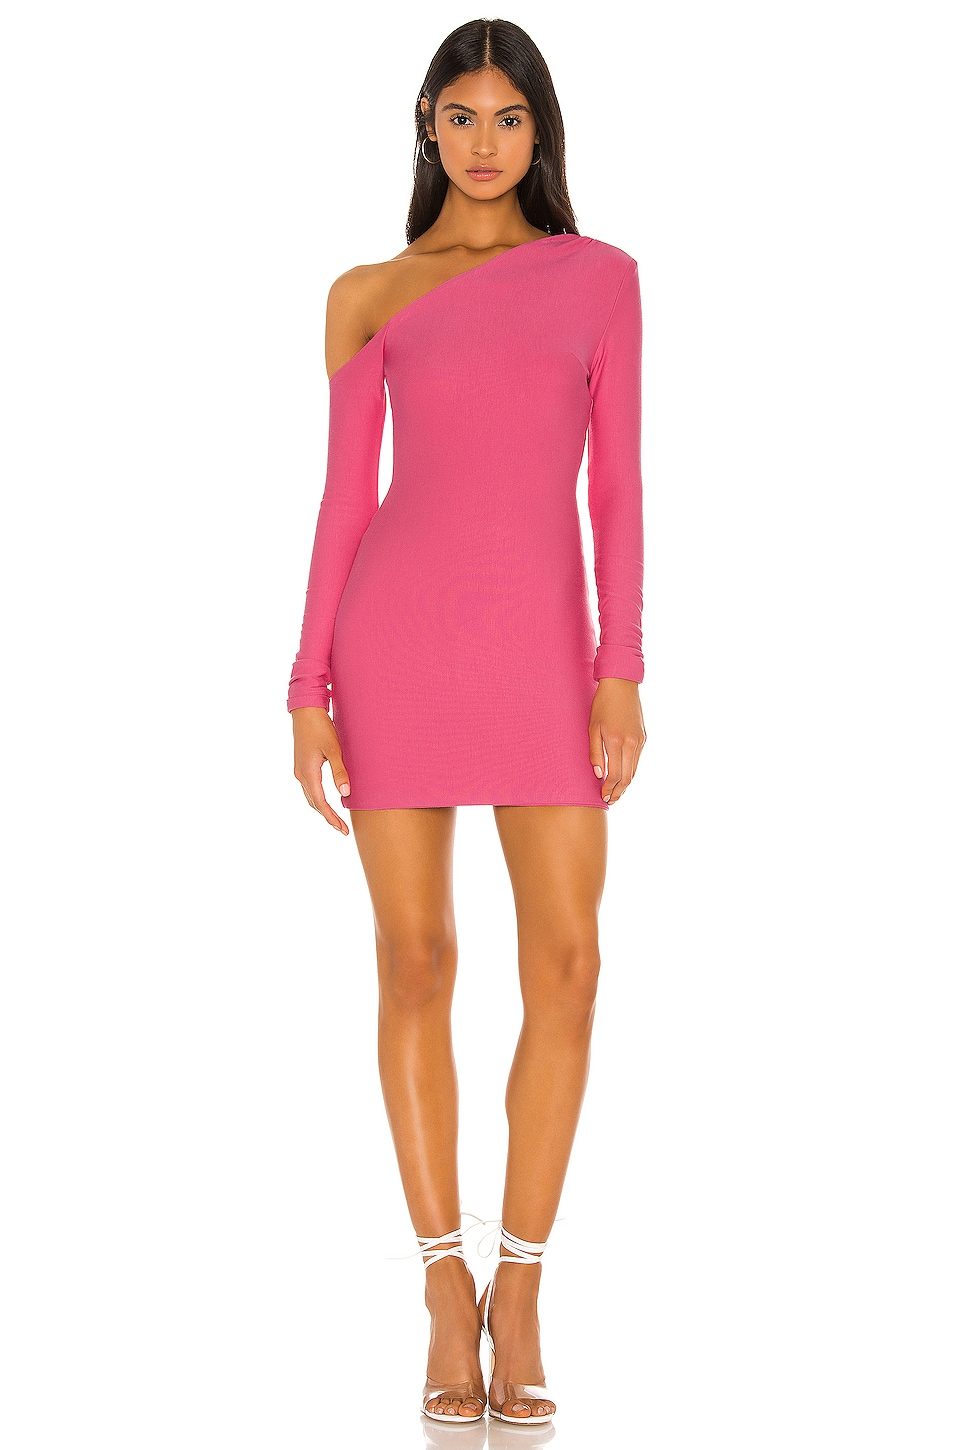 h:ours Maisy Dress in Taffy Pink